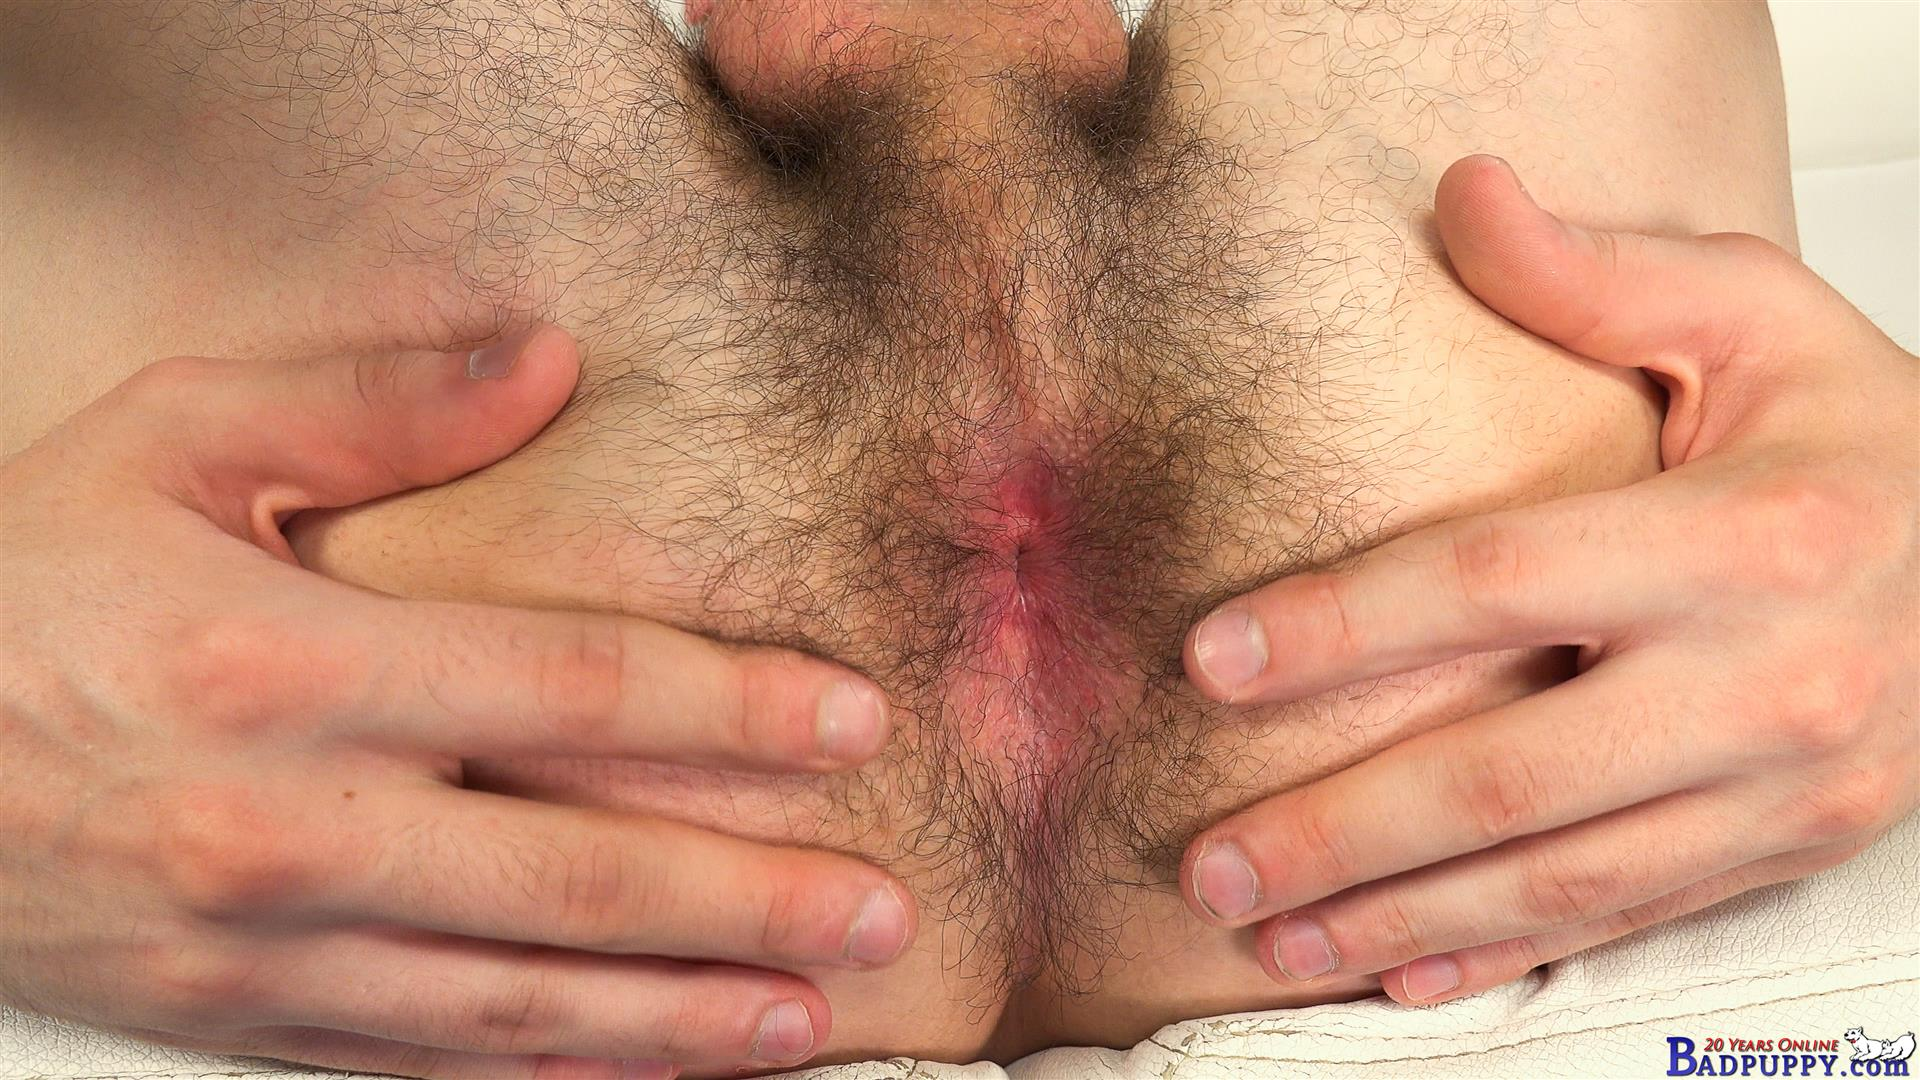 Big black cock growing from small to hard cum shot atlanta 3